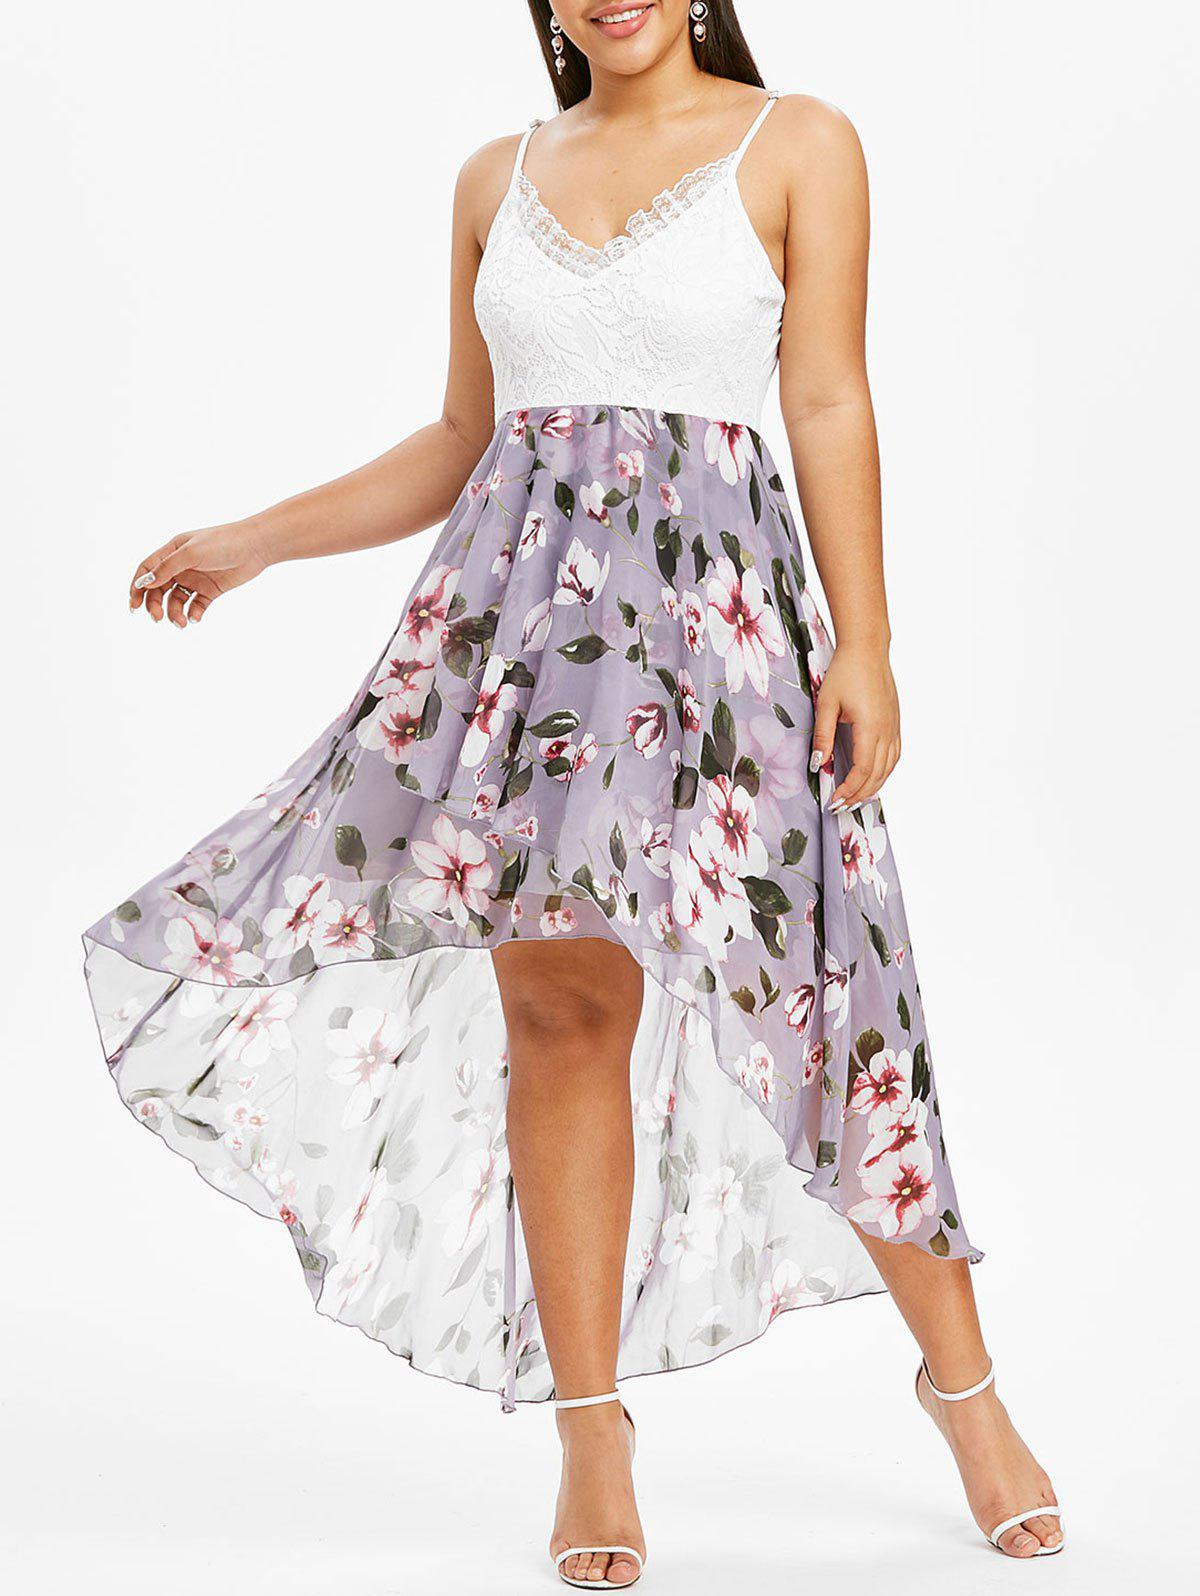 Chic Plus Size Flower Print Lace Insert Ruffle High Low Dress